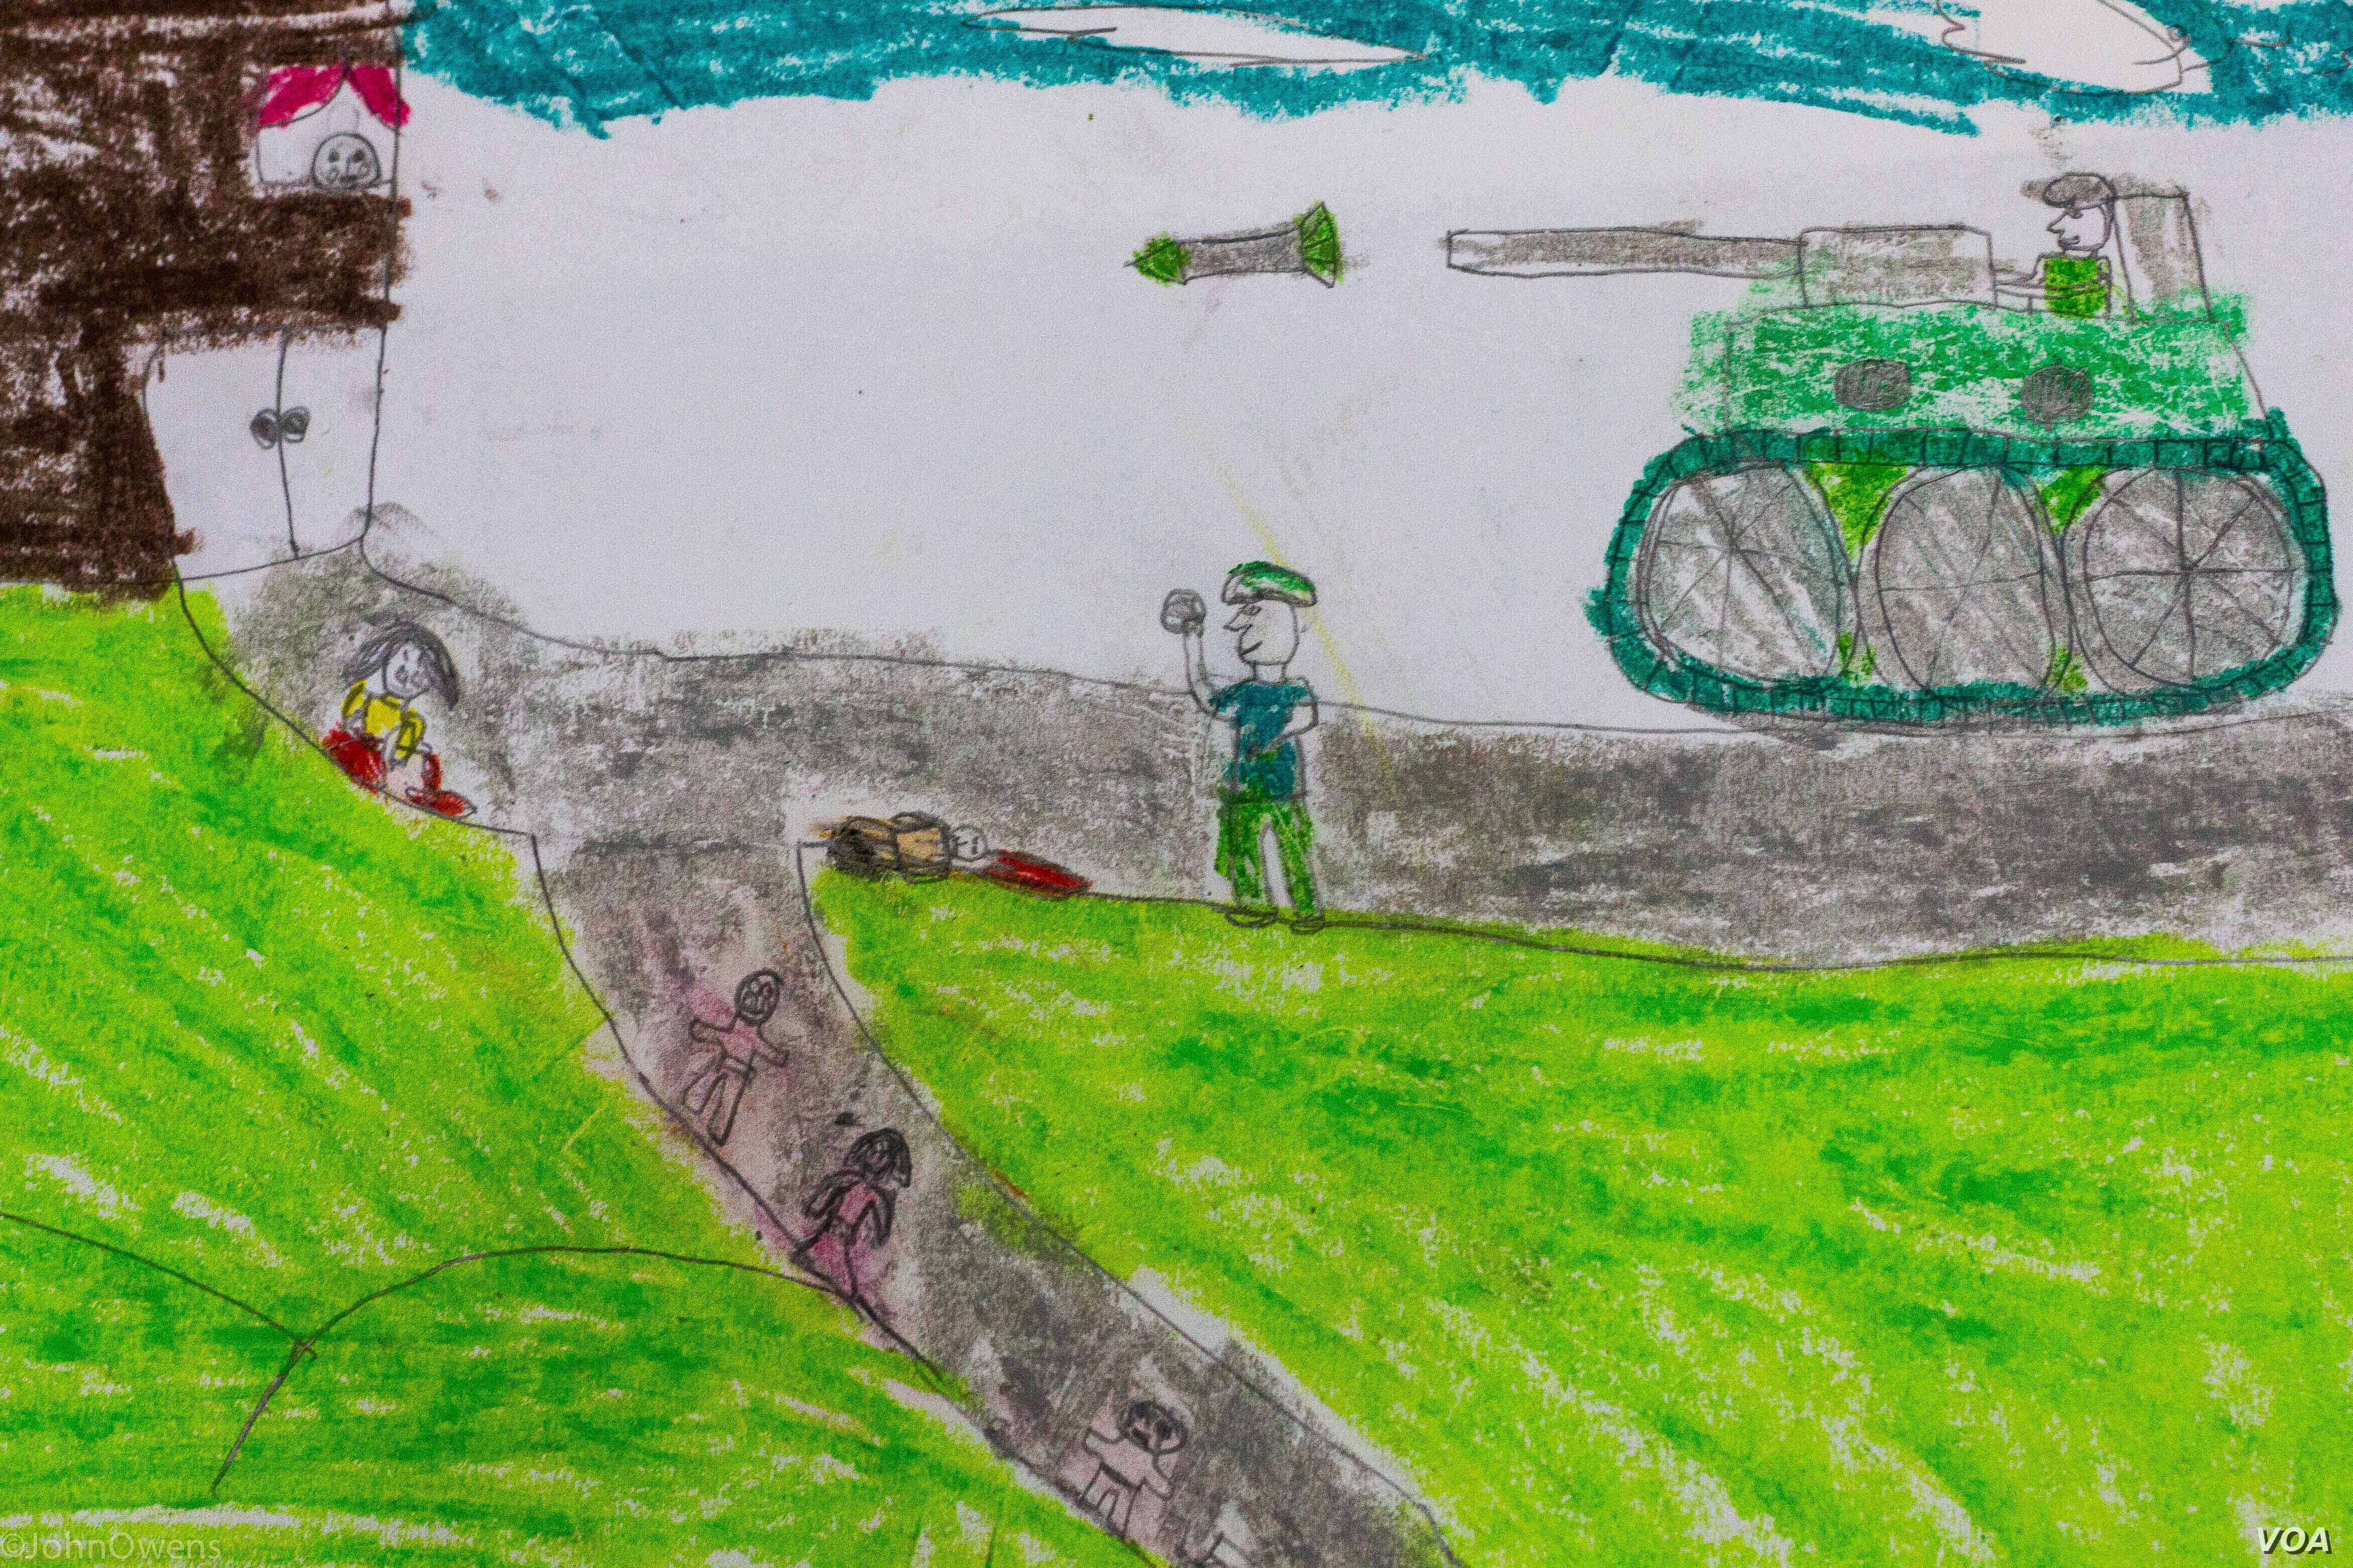 Drawings from the classes held in a community center in Shatila often used to depict the violence that children had escaped from in Syria, Dec. 4, 2015. (J. Owens/VOA)